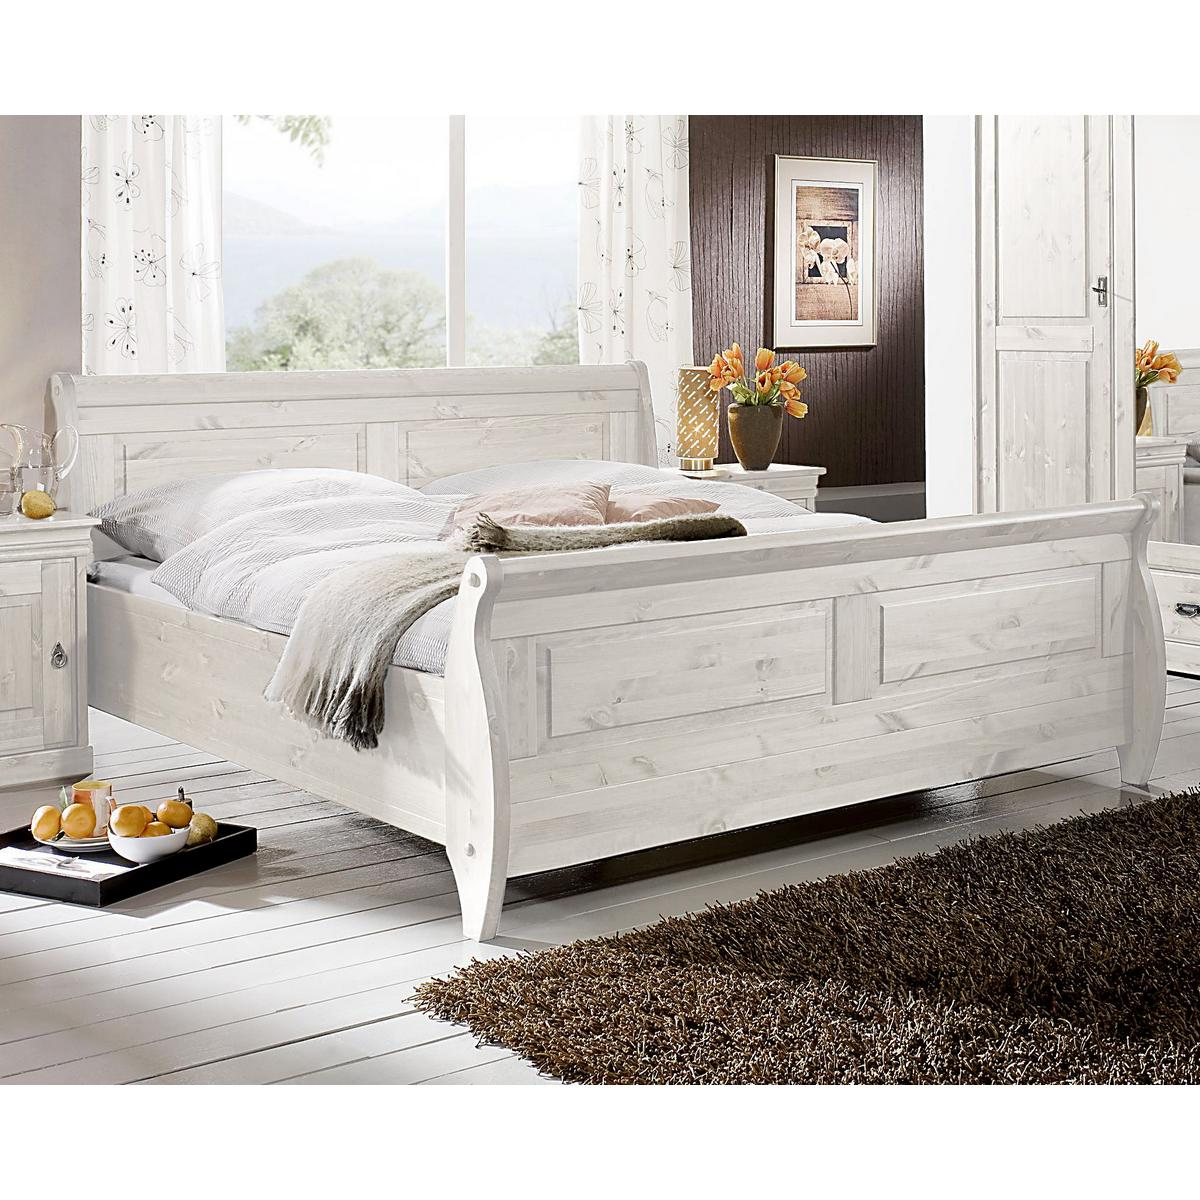 landhaus schlafzimmer roland ii kiefer massiv wei lasiert. Black Bedroom Furniture Sets. Home Design Ideas